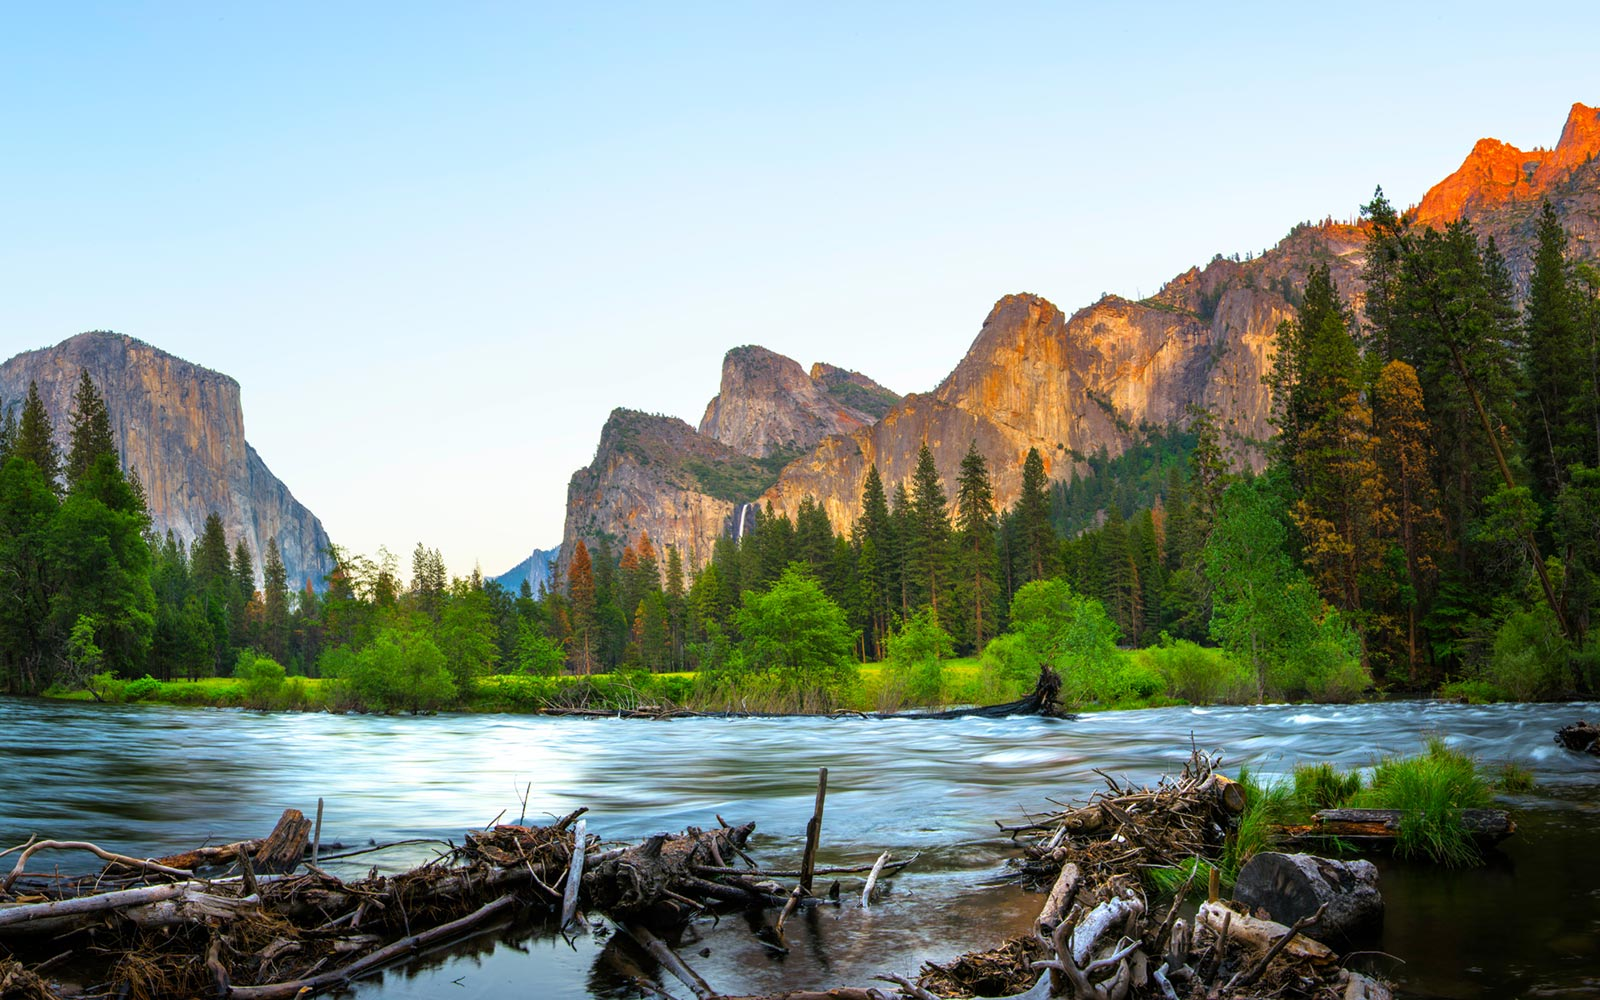 El Capitan and Merced River, Yosemite National Park, California